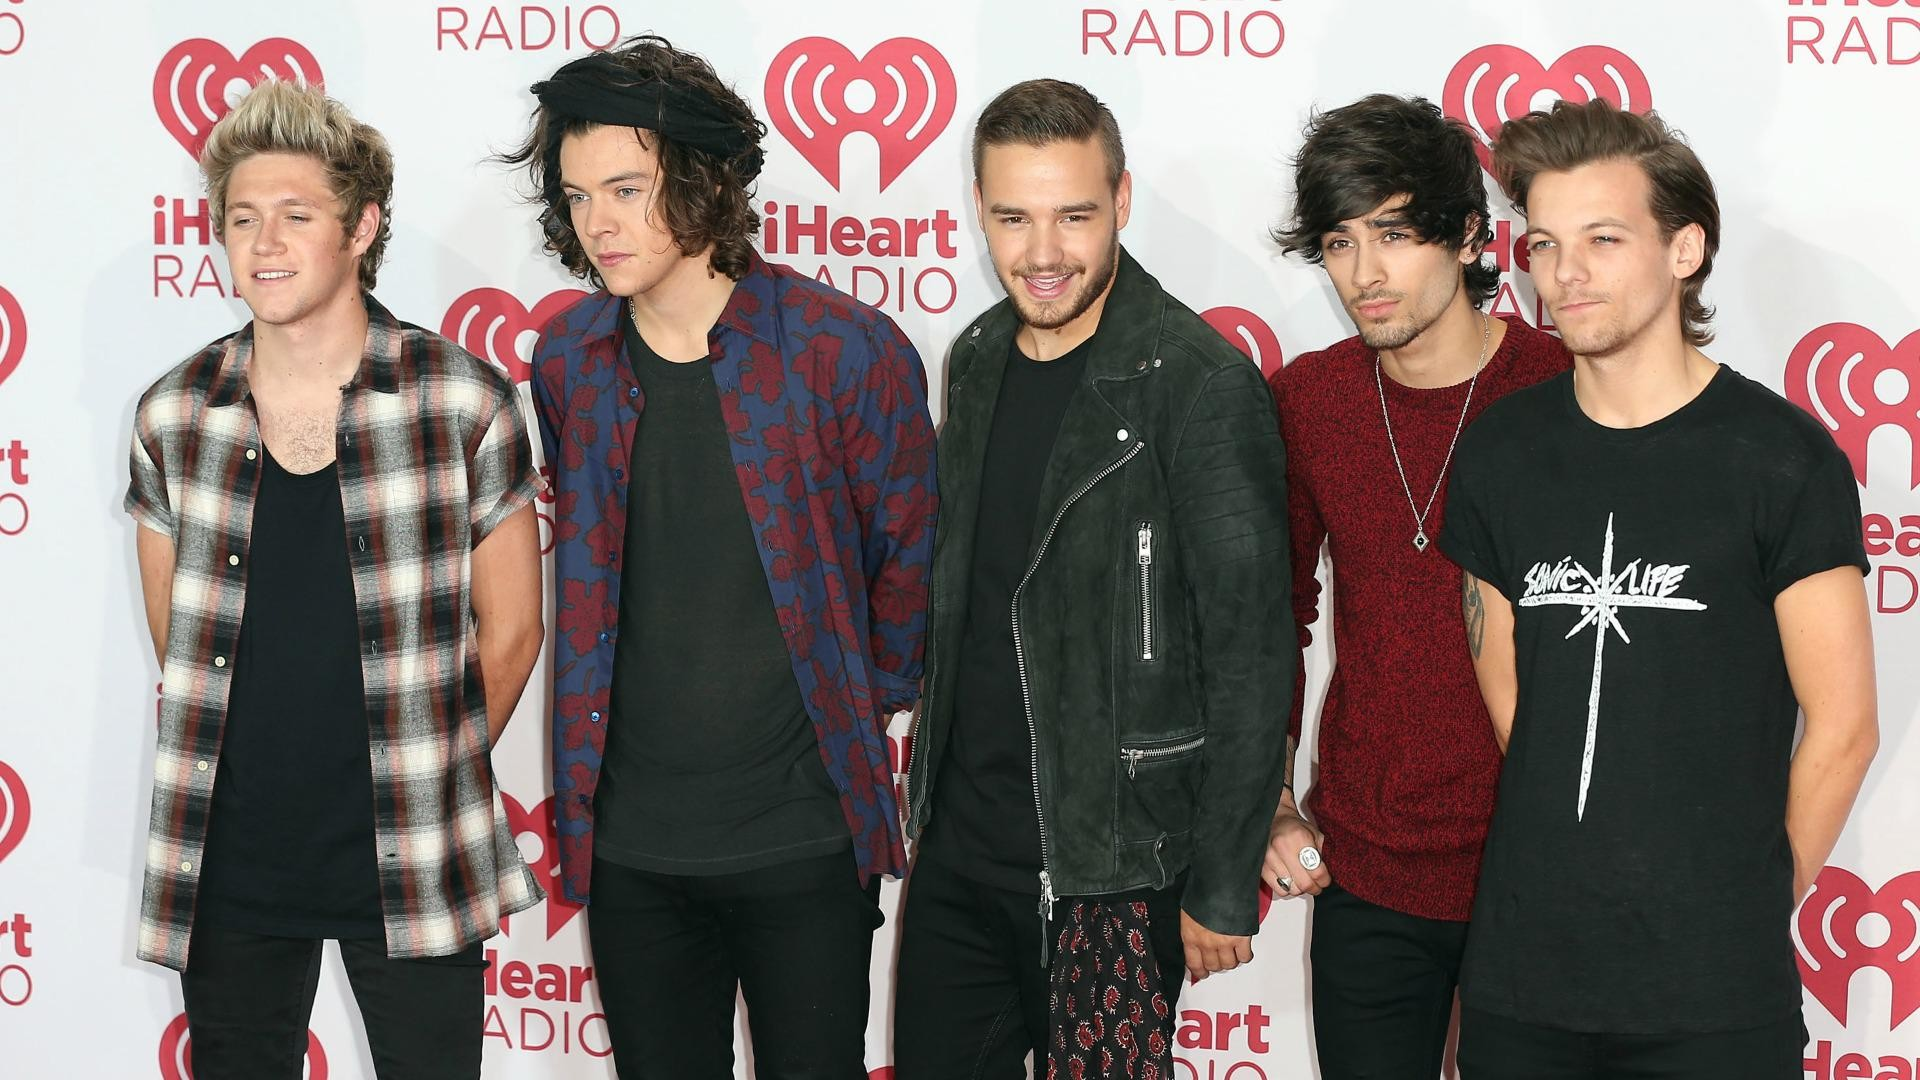 Zayn Malik's absence from the Today show may signal trouble for One  Direction